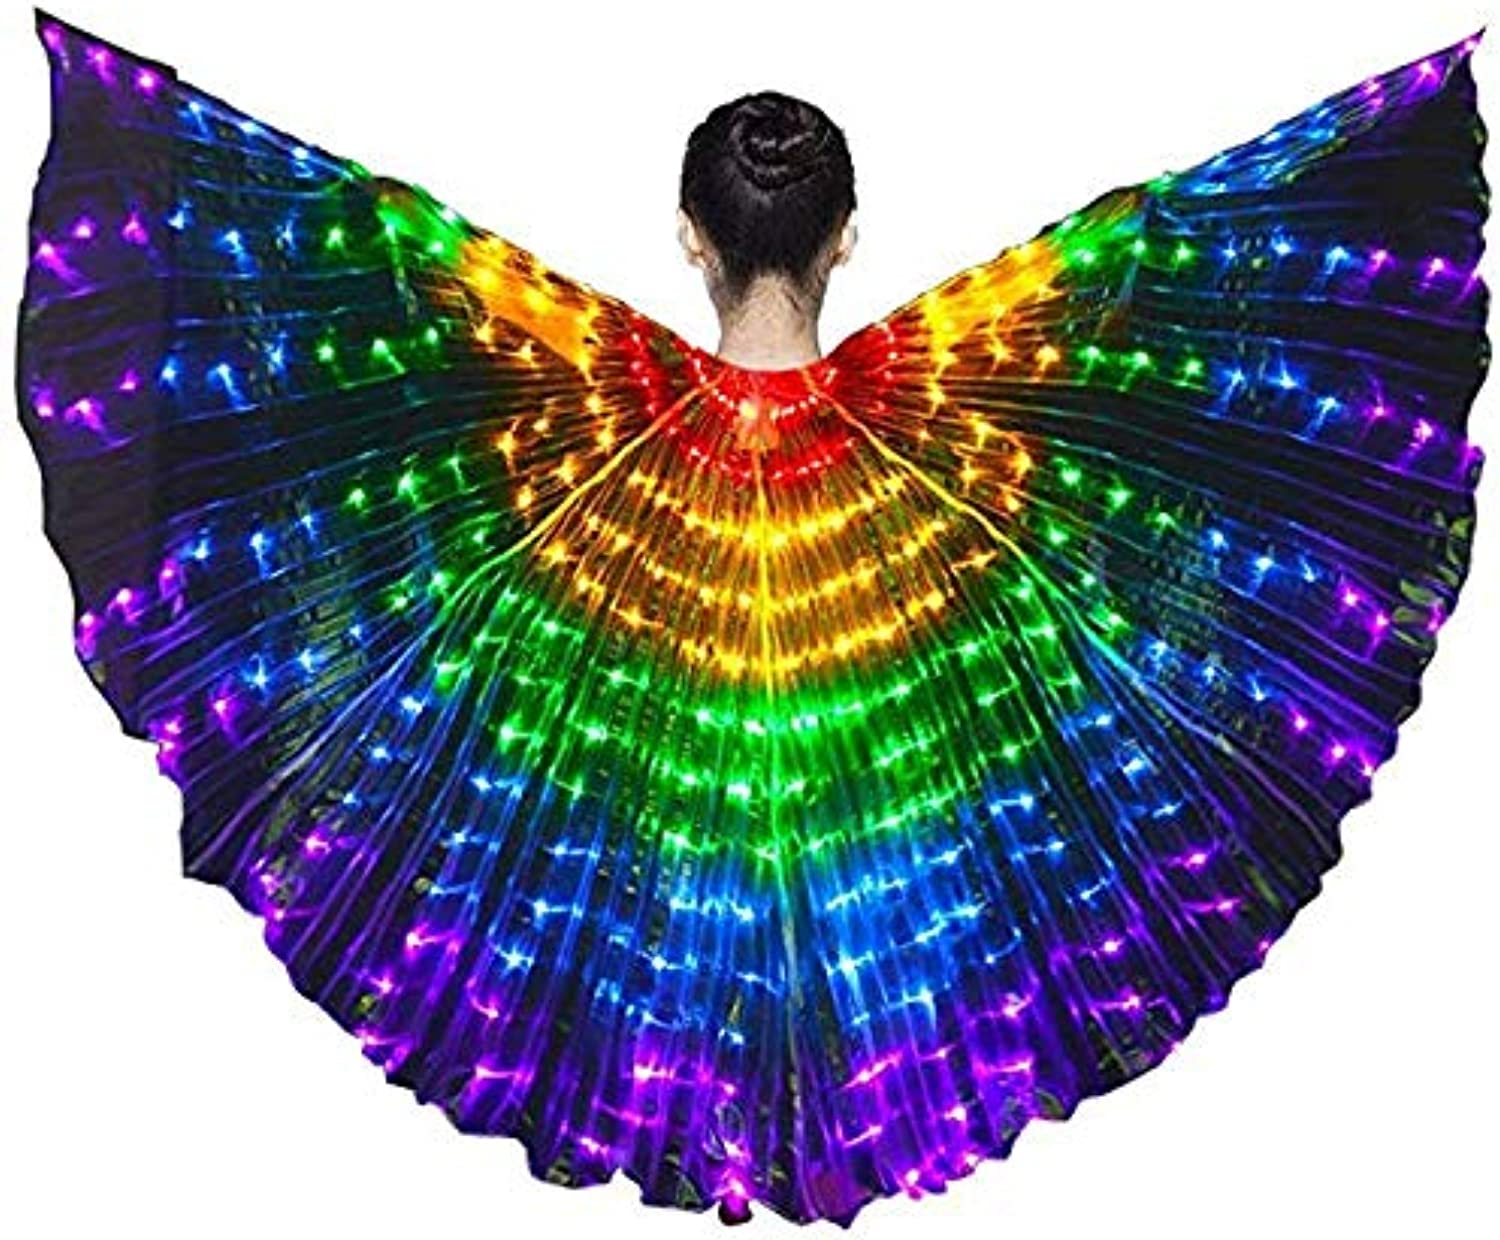 Kingszh Belly Dance 360 Degrees LED Light Wings Glowing Performance Clothing with Flexible Telescopic Sticks